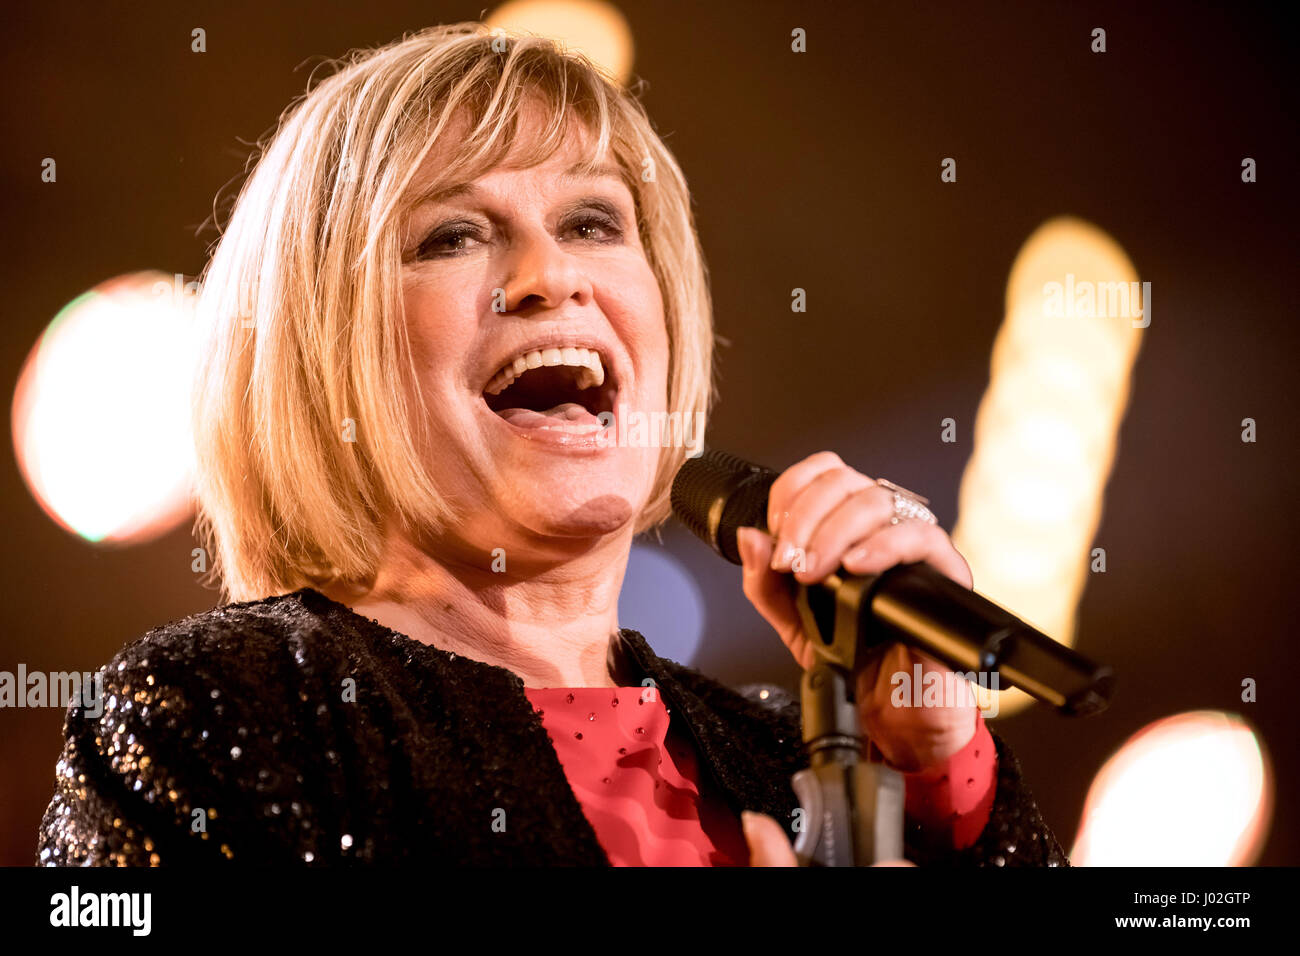 Magdeburg, Germany. 08th Apr, 2017. Singer Mary Roos during the recording of the TV show 'Willkommen bei Carmen Stock Photo